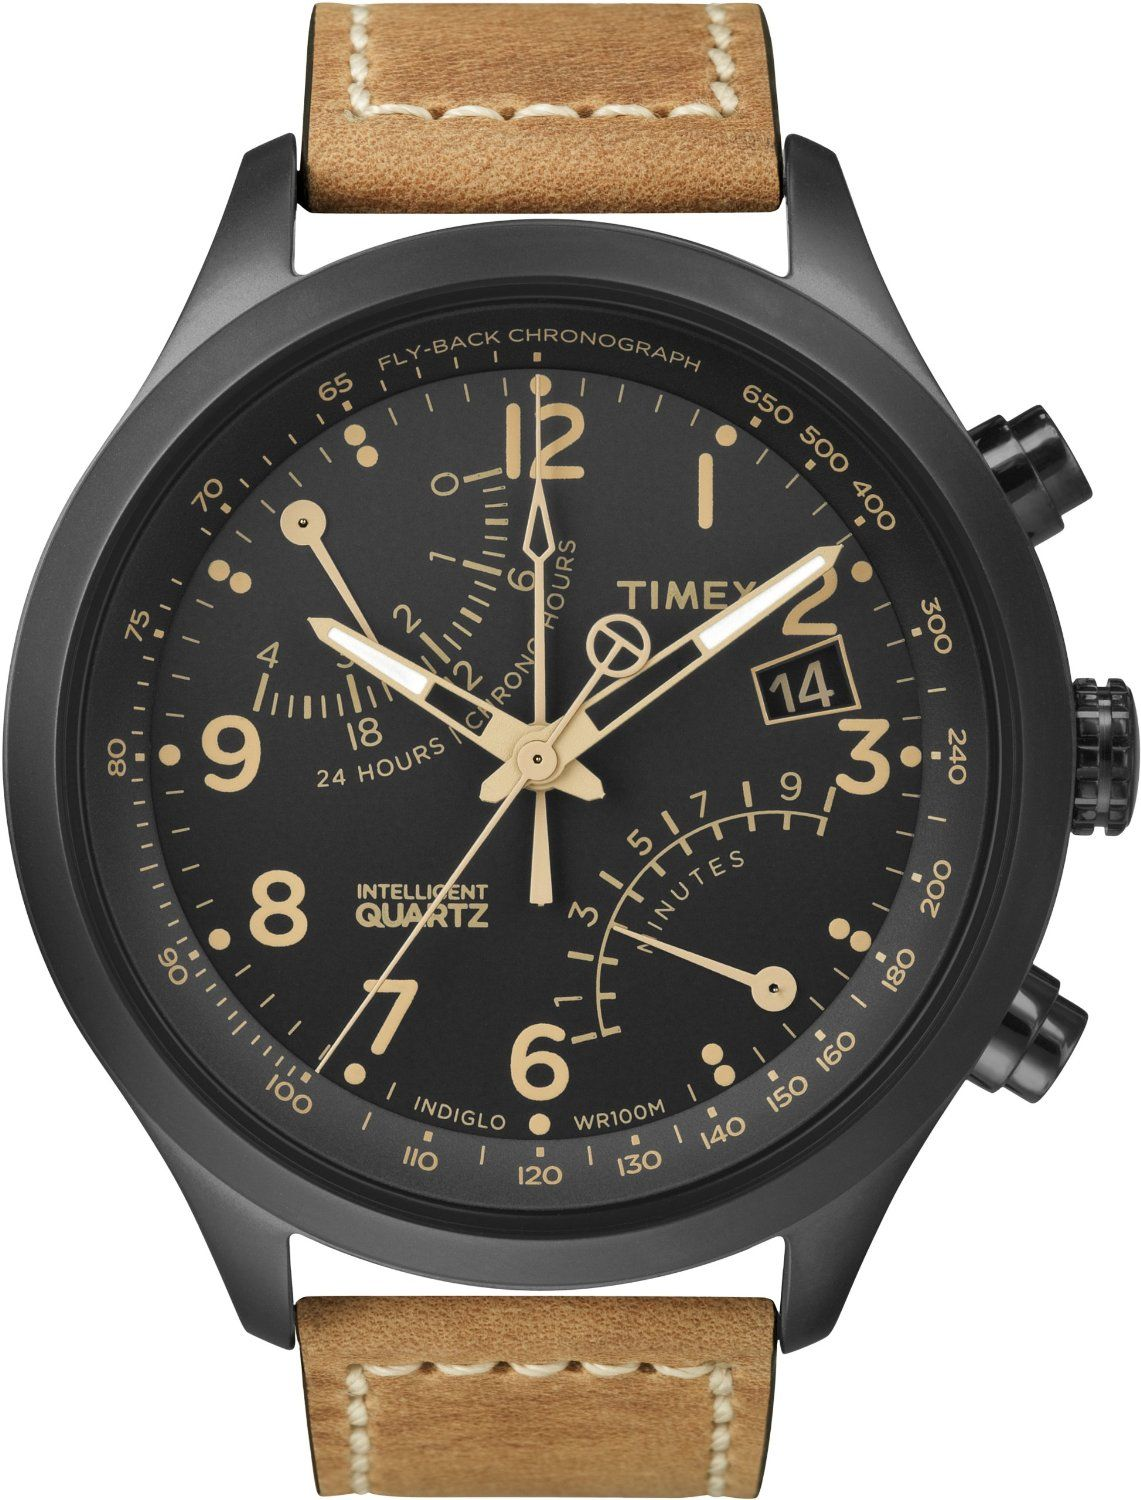 Timex Men's T2N700 Intelligent Quartz SL Series Fly-Back Chronograph Brown Leather Strap Watch: Watches: Amazon.com